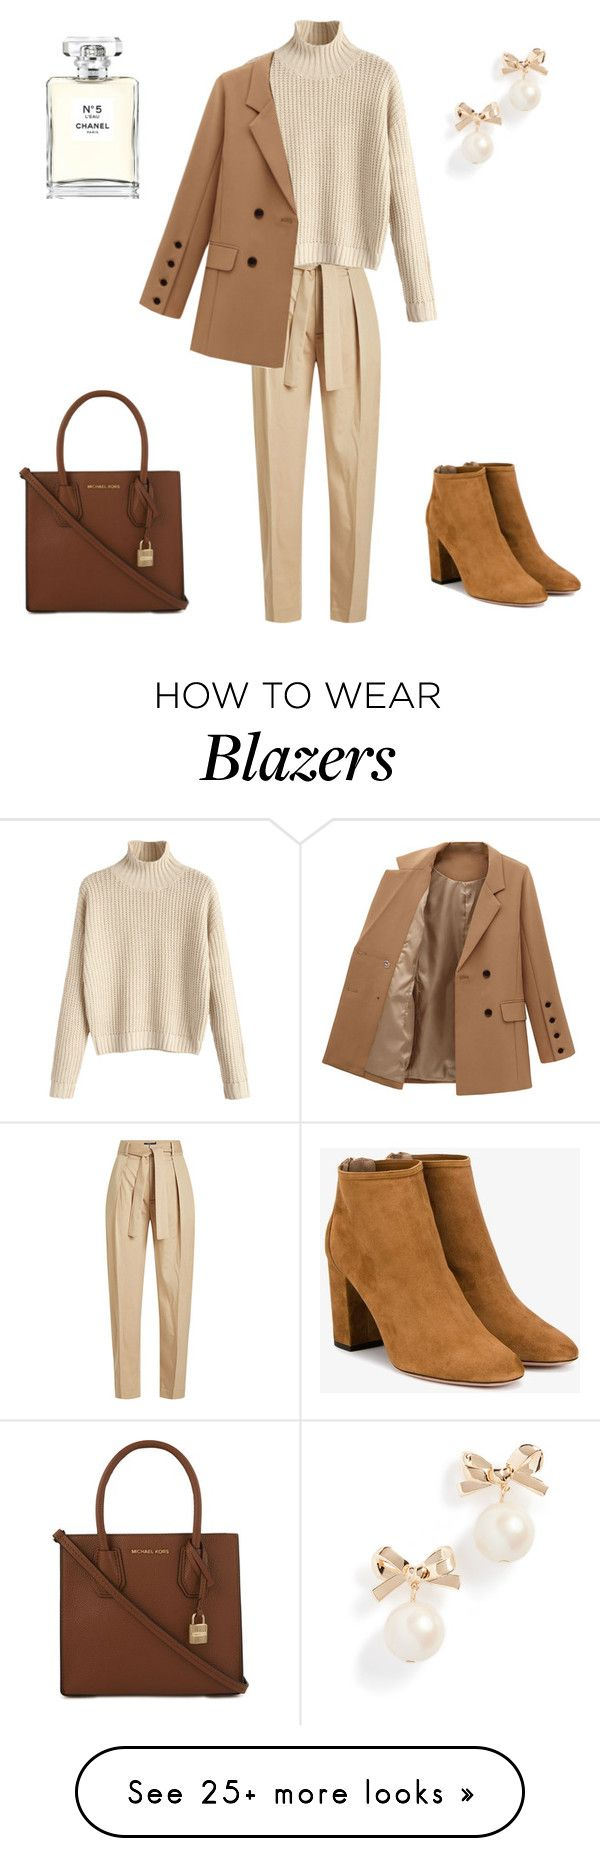 """Earth Colors!"" by maral-askari on Polyvore featuring Polo Ralph Lauren, Aquazzura, MICHAEL Michael Kors, Kate Spade and Chanel"